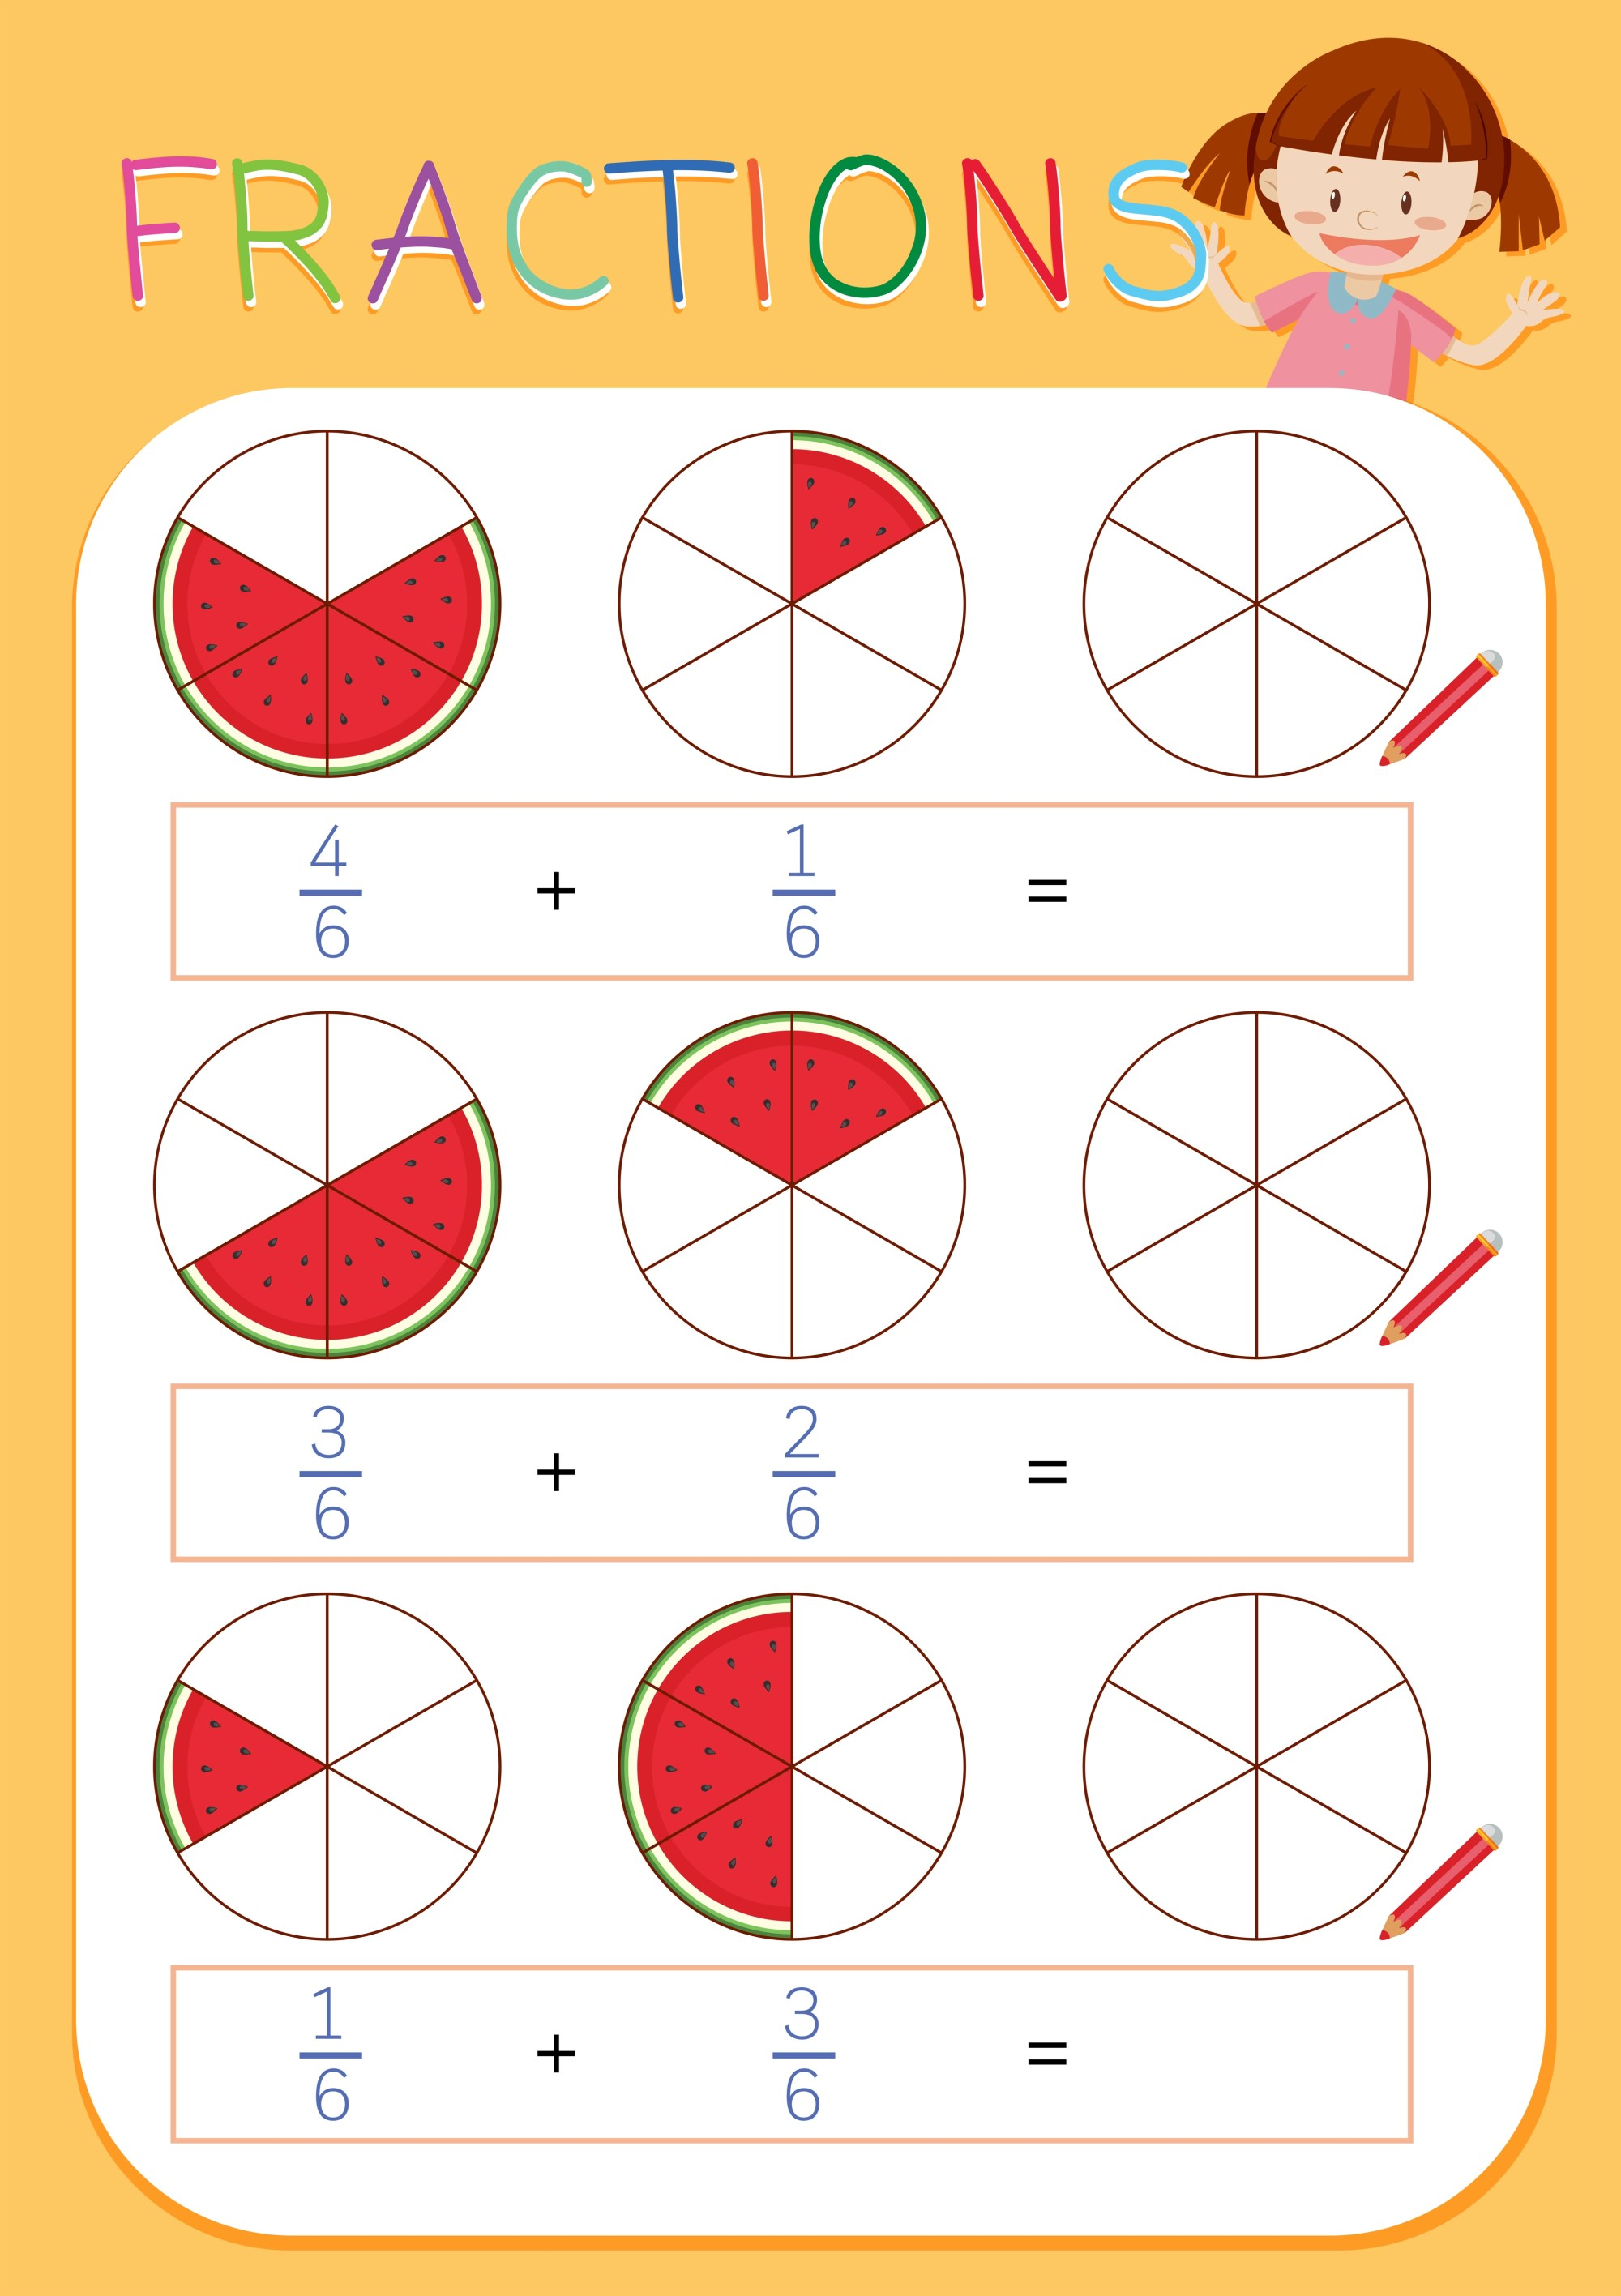 hight resolution of A math fractions worksheet - Download Free Vectors